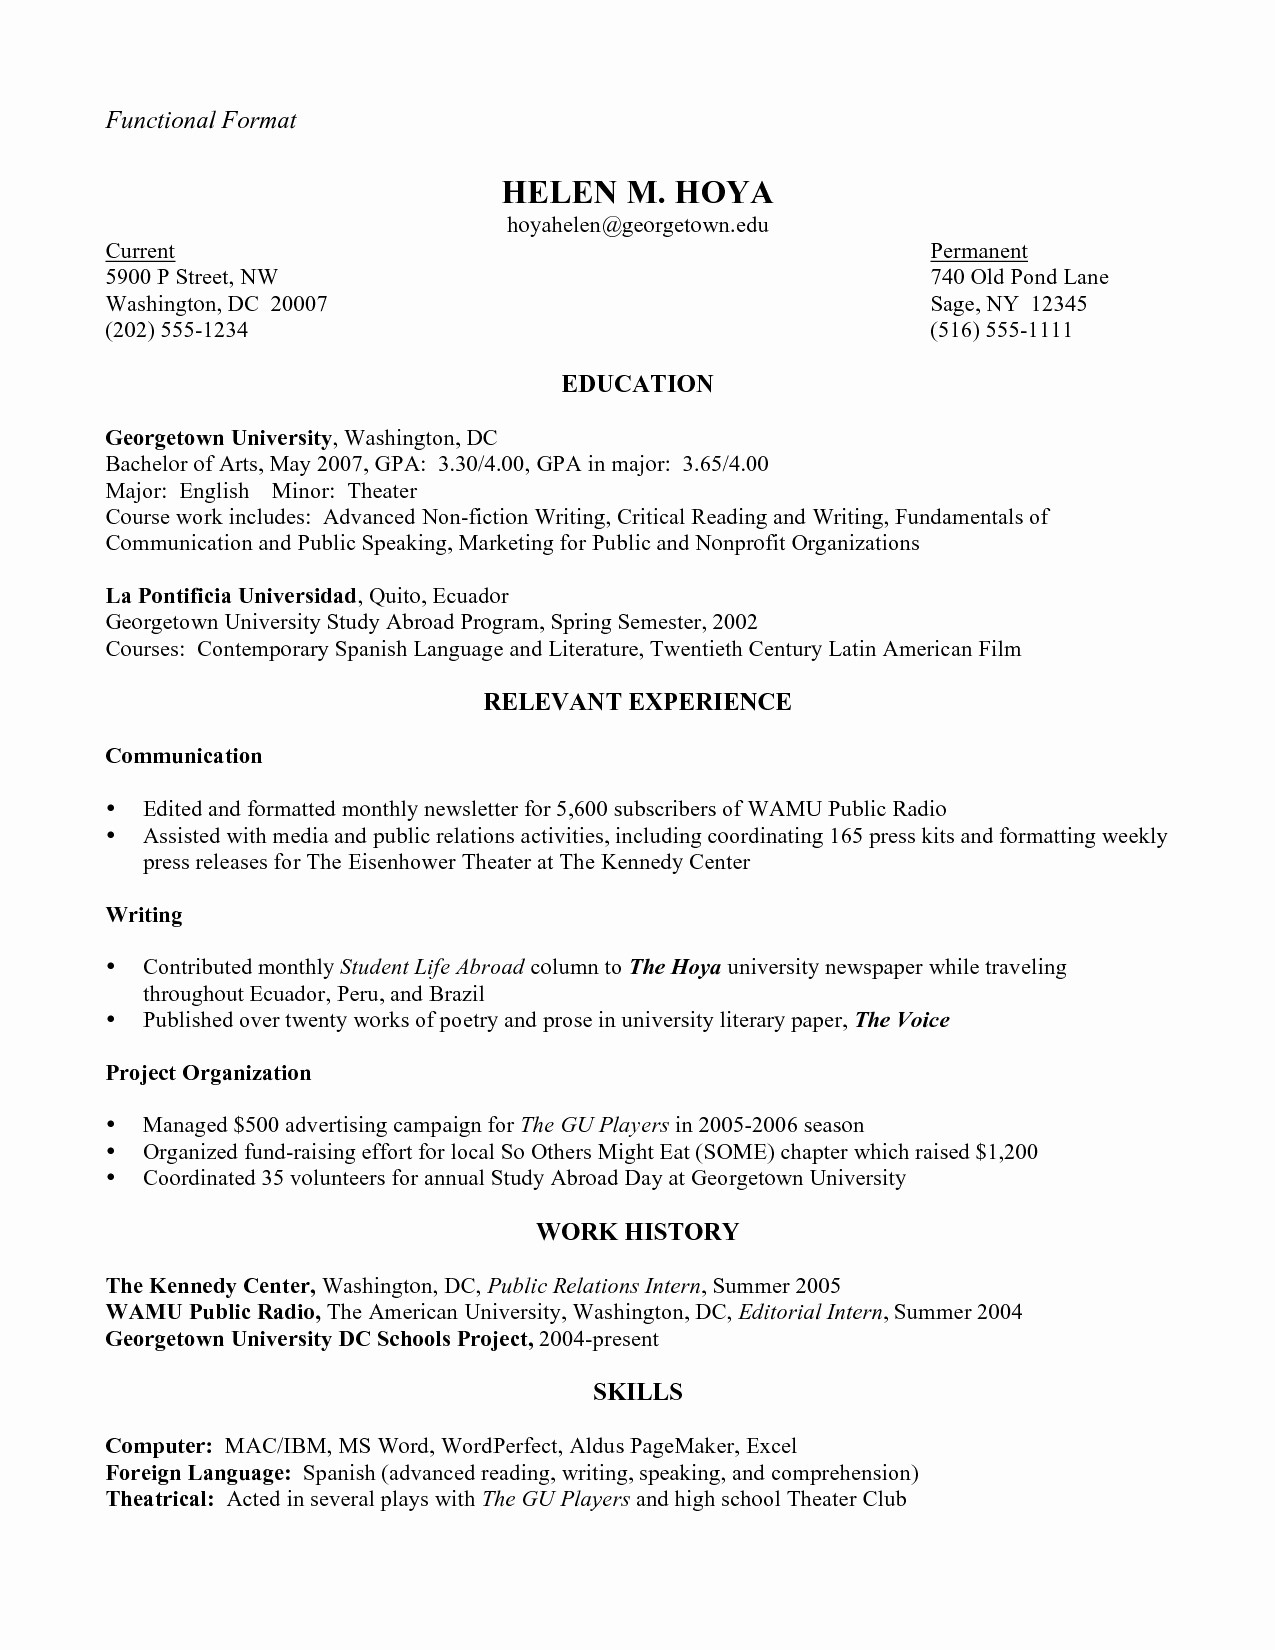 Public Speaking On Resume - 20 Public Speaking Resume